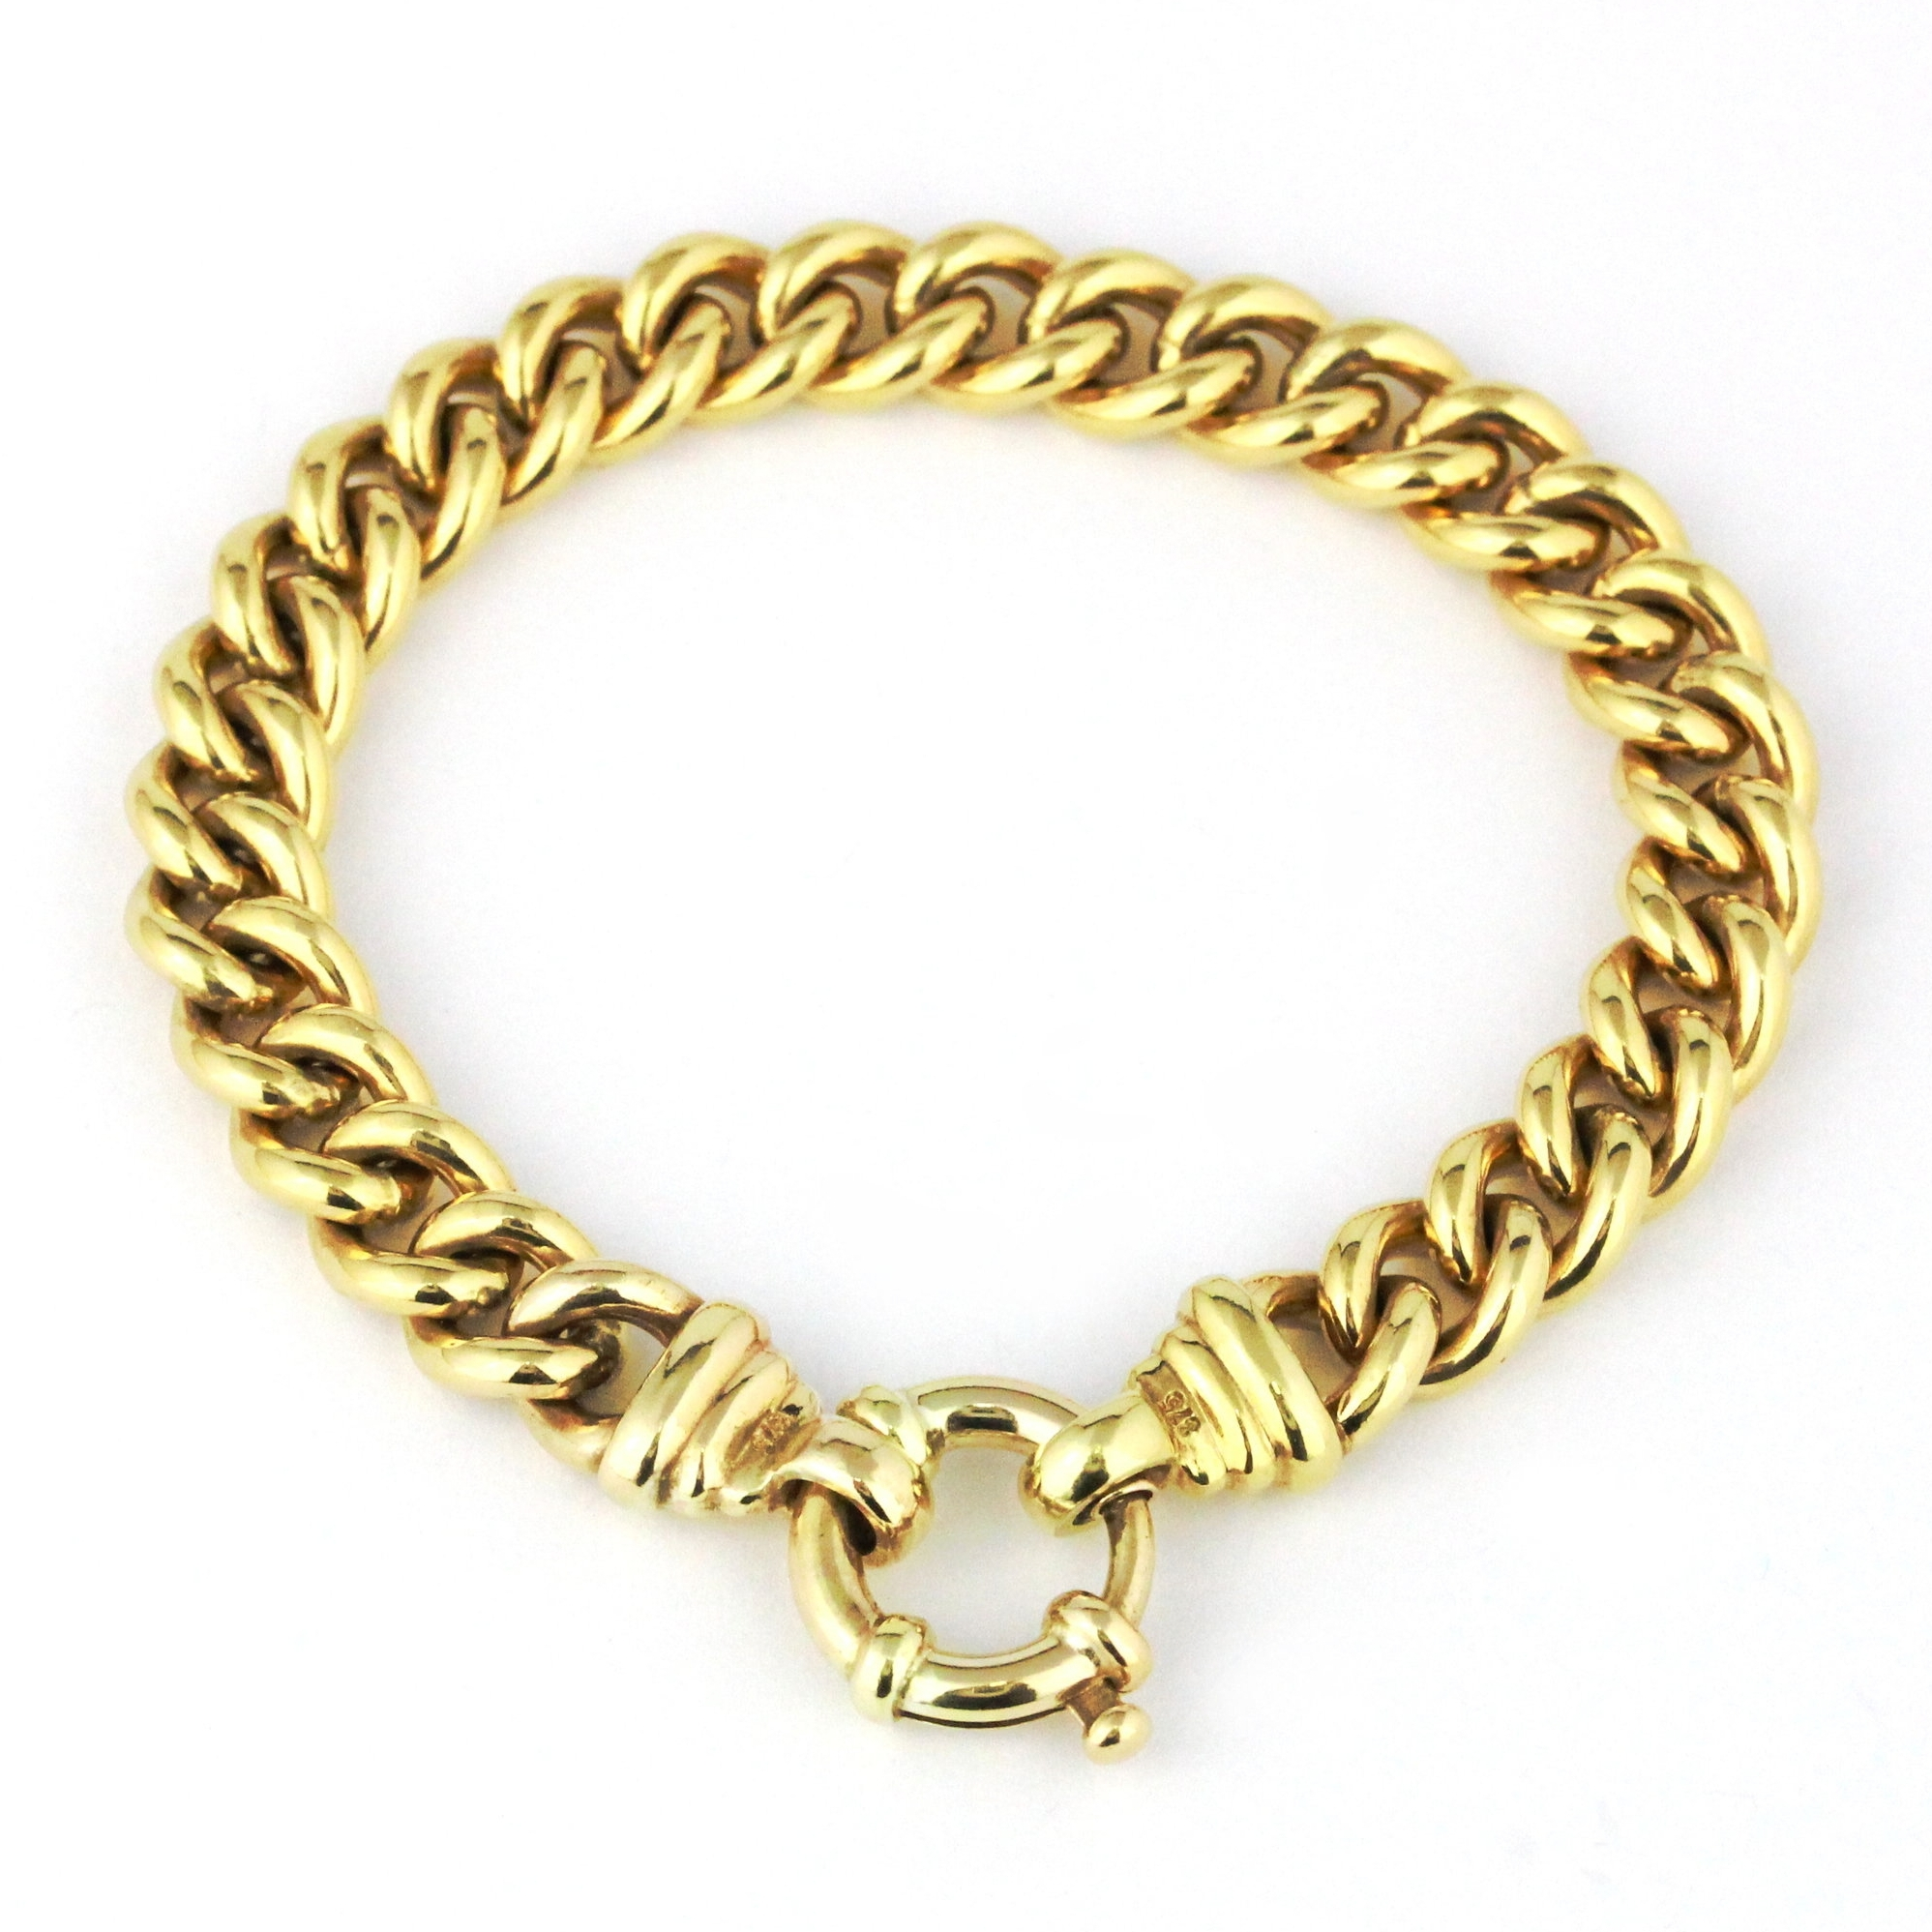 Yellow gold curb link bracelet with bolt ring.